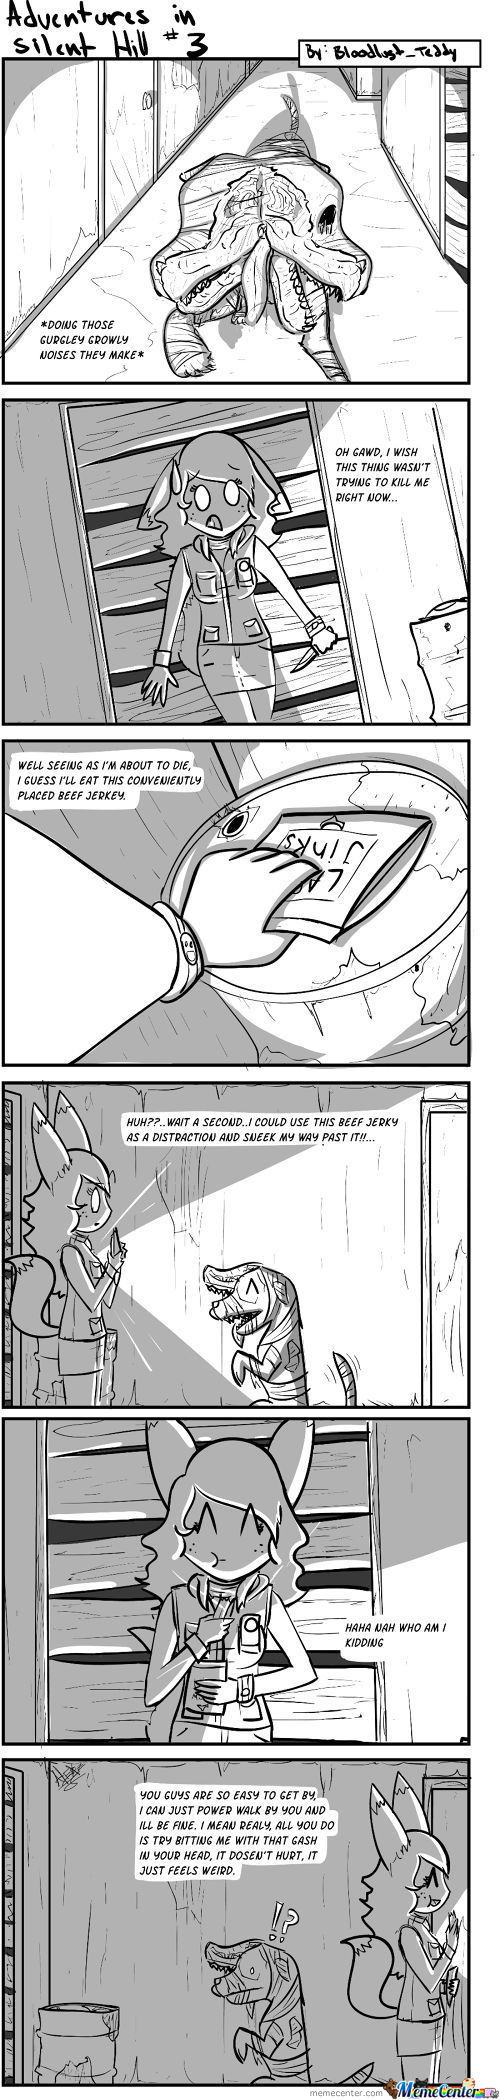 Adventures In Silent Hill #3